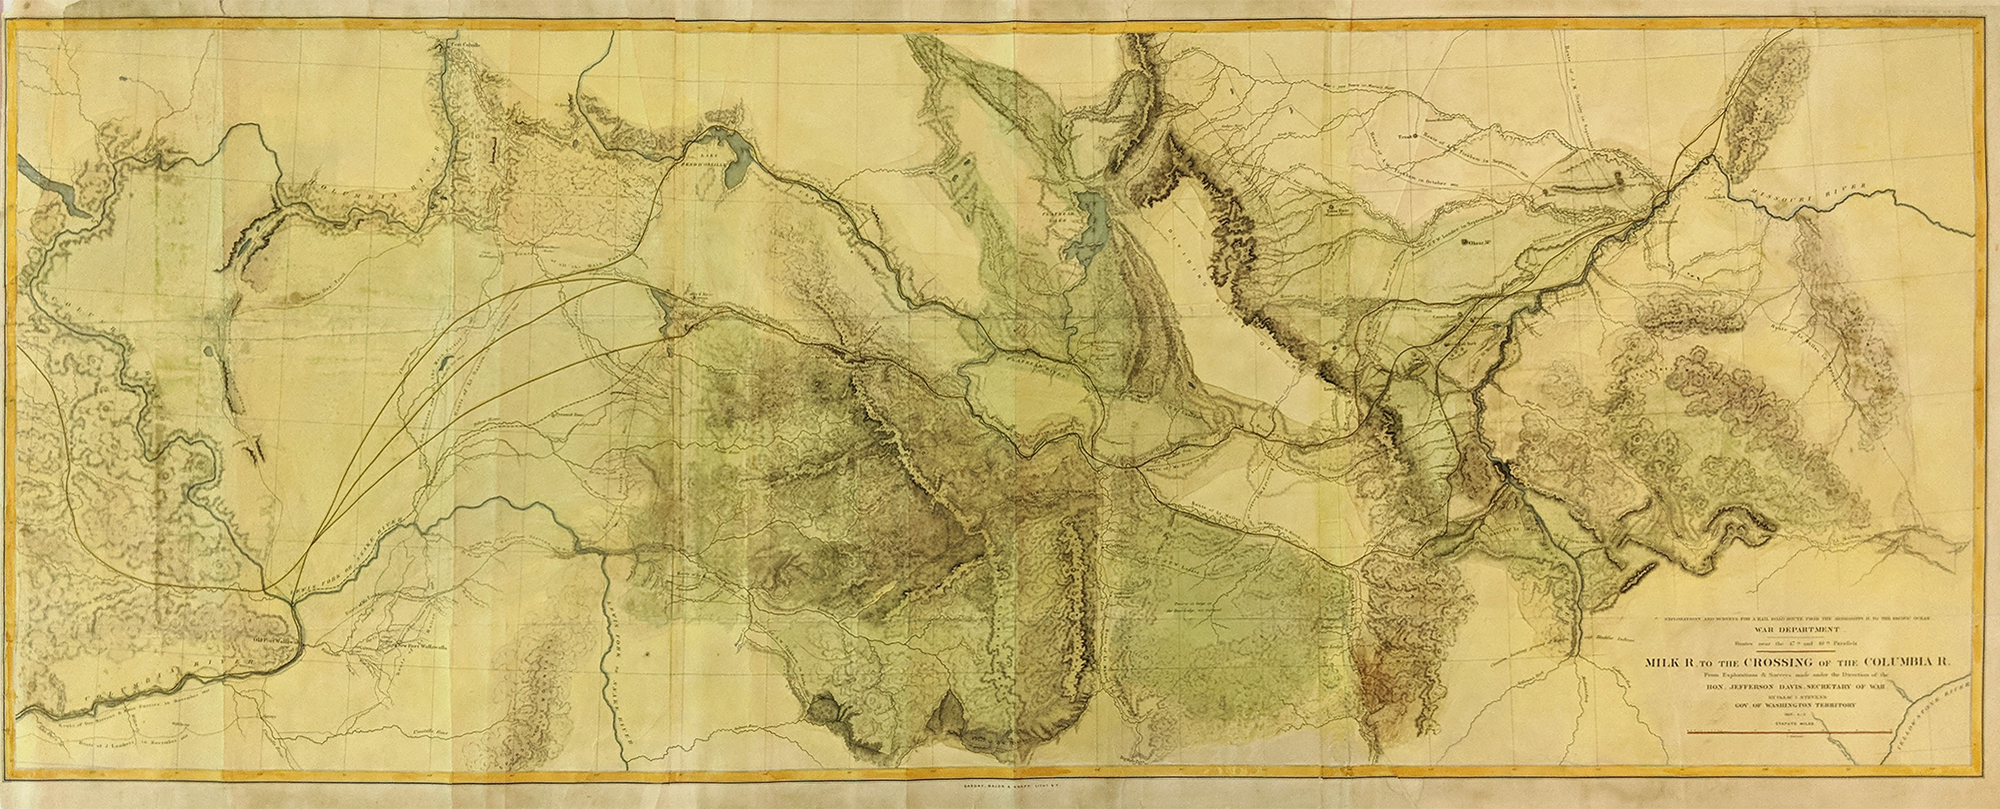 milk river to crossing of columbia river large map from us railroad survey 1855 expedition led by gov stevens of washington territory